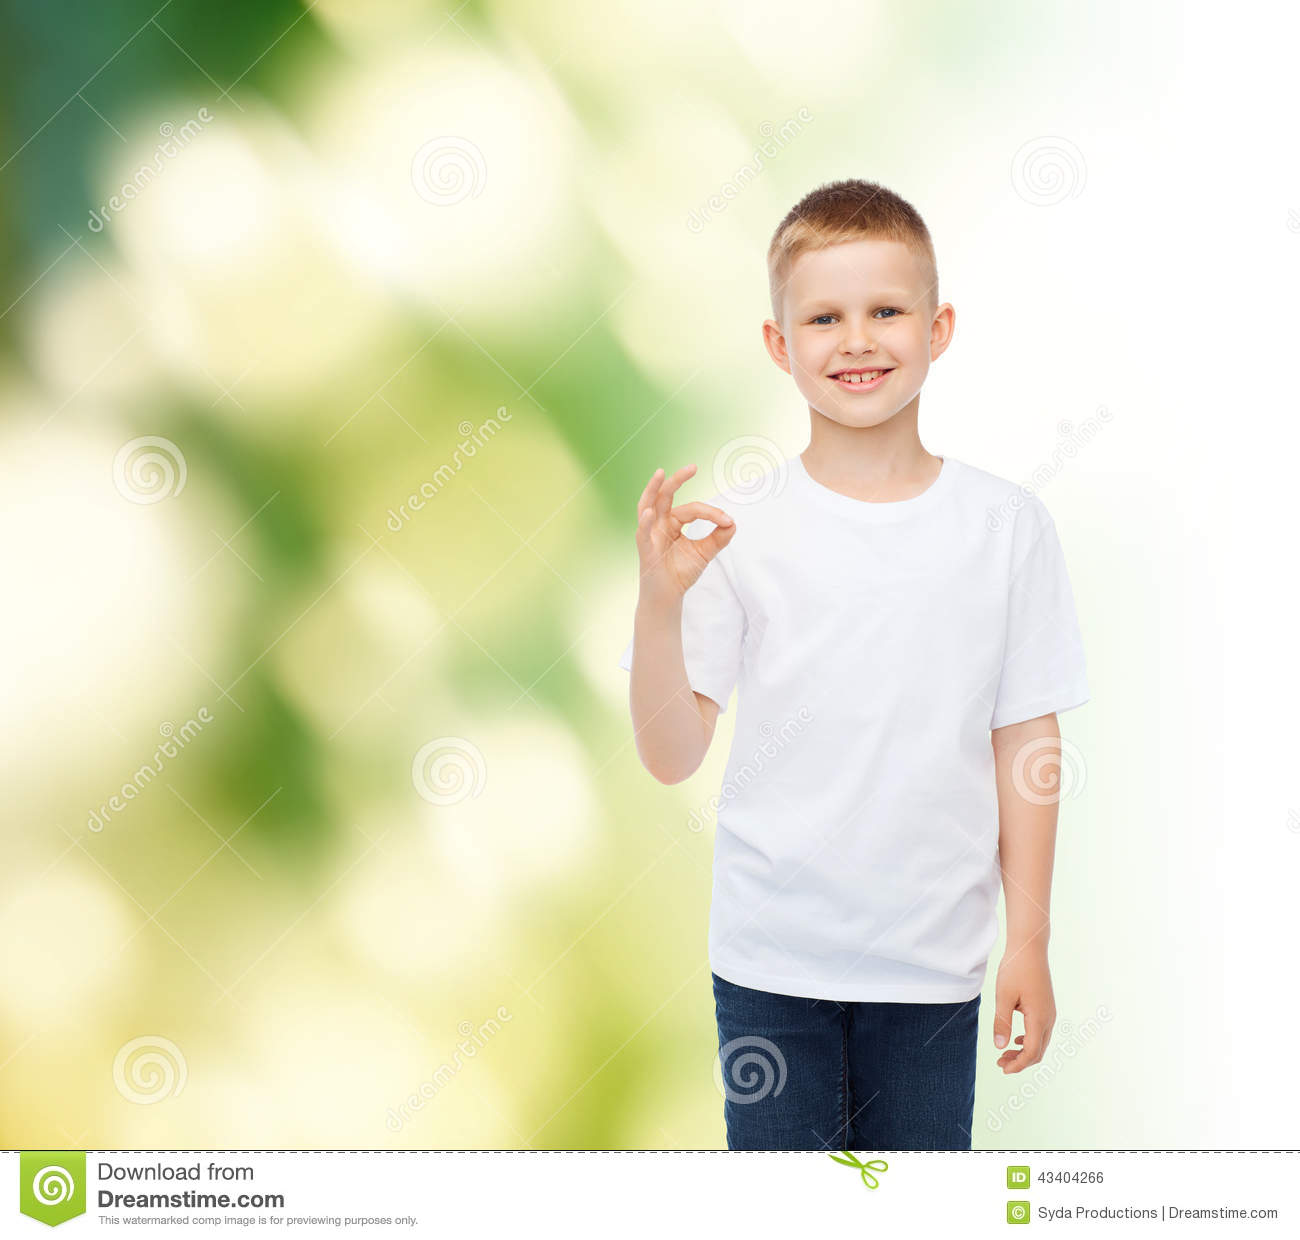 5e09b2ea5a Advertising, ecology, gesture, people and childhood concept - smiling  little boy in white blank t-shirt making ok sign over green background.